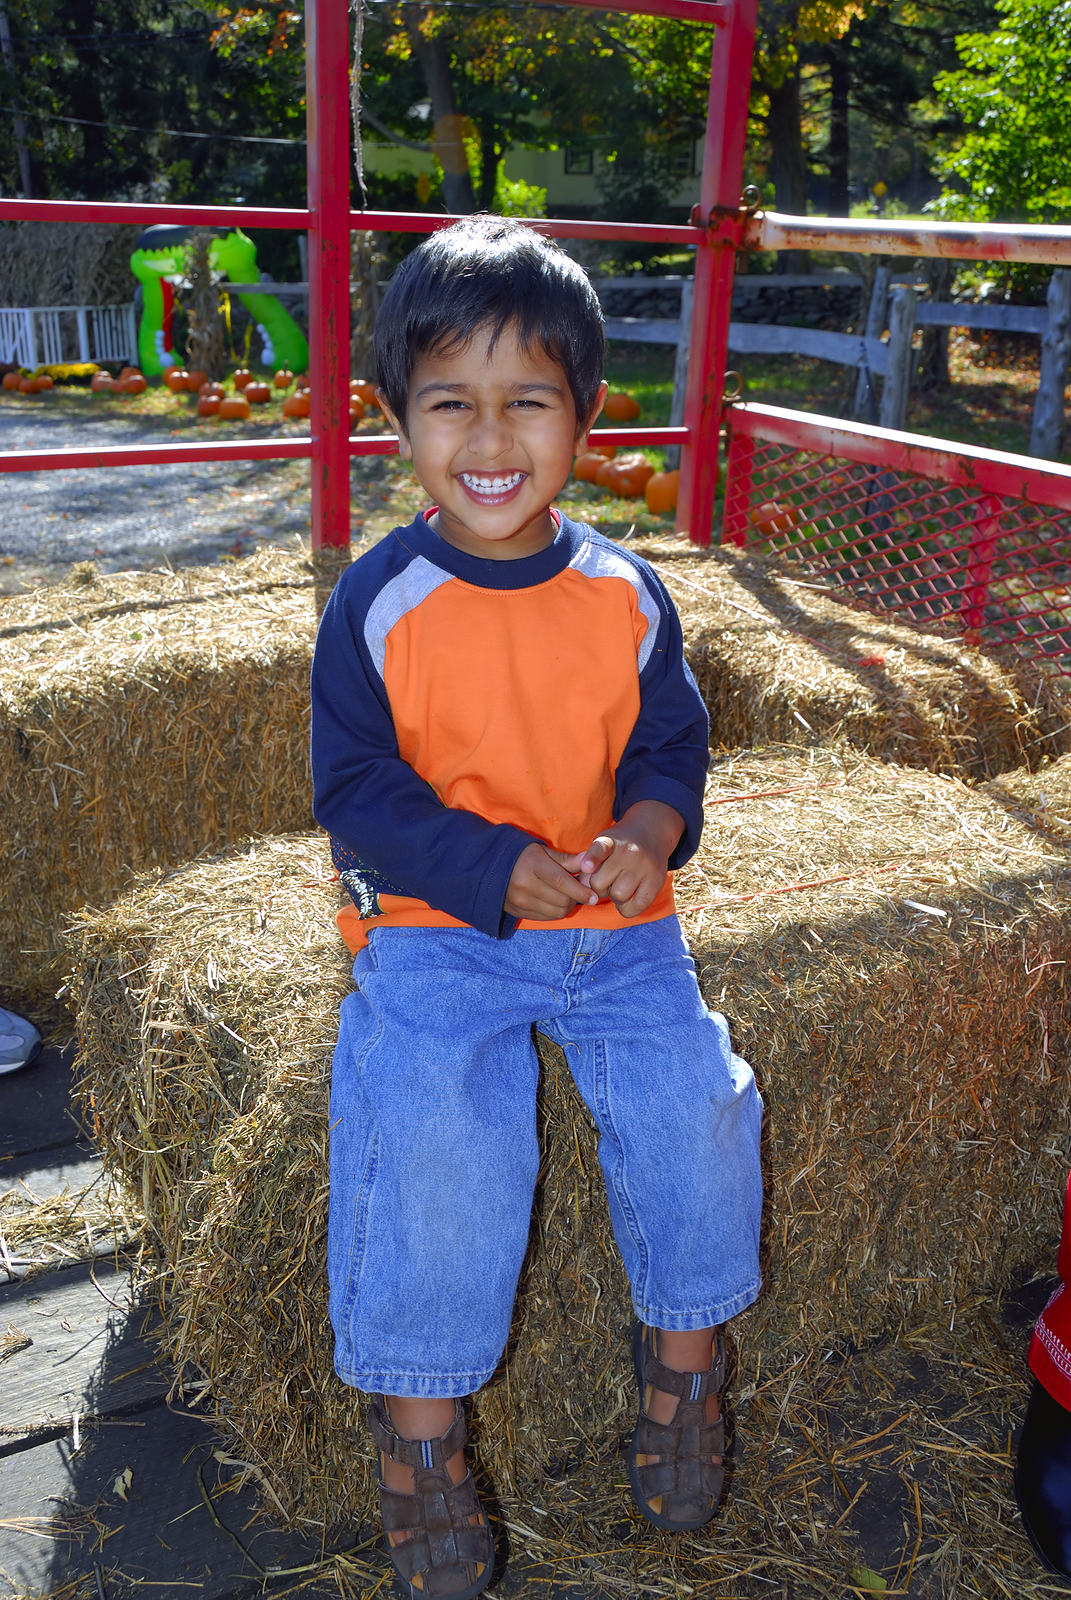 Visit a pumpkin patch near you San Jose home.